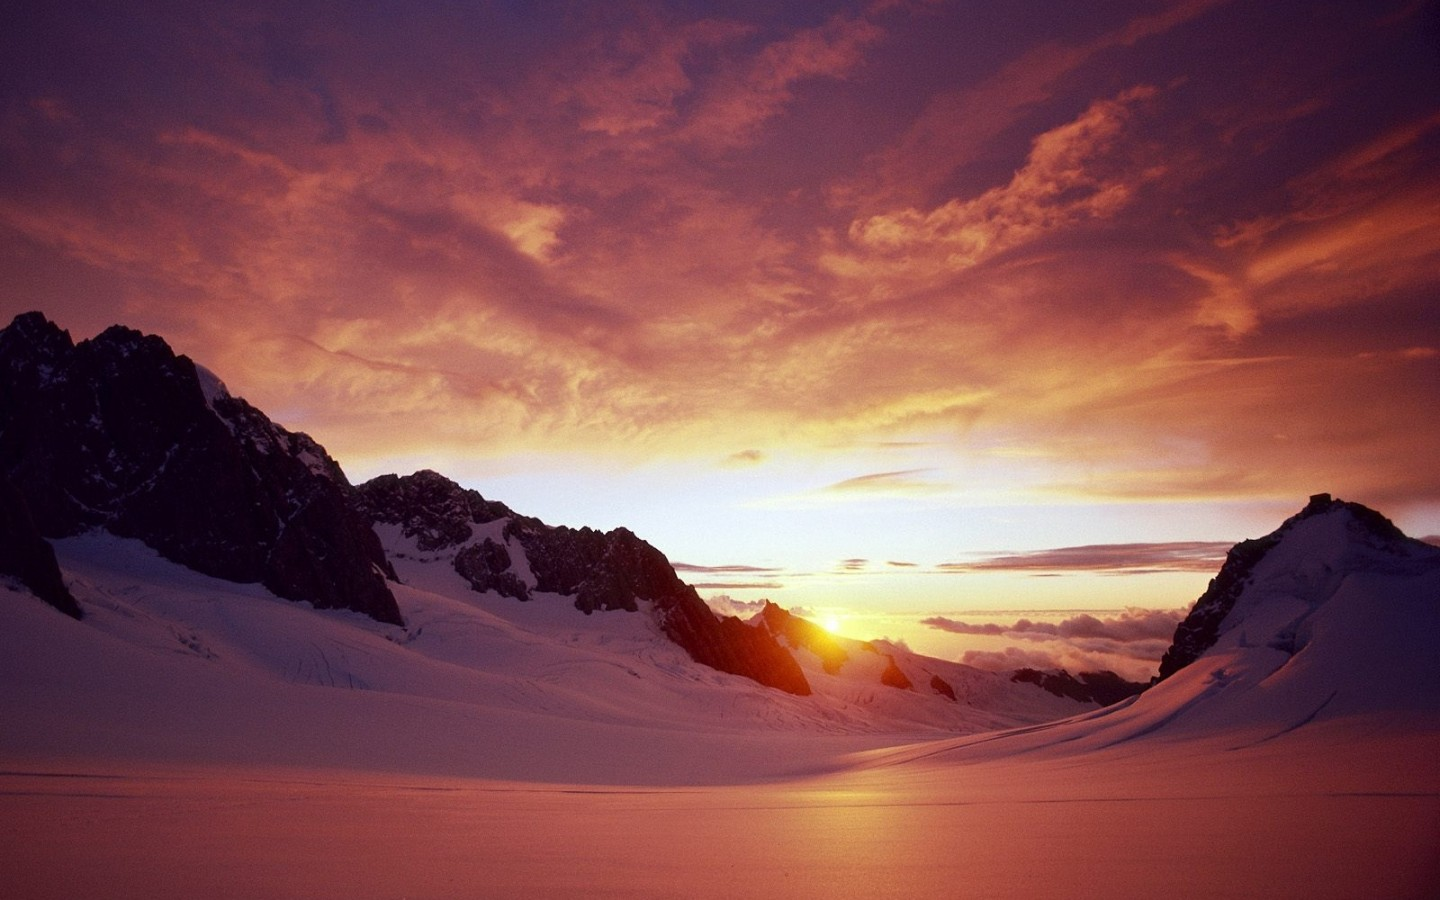 Mountain Snow Sunset Wallpaper And Background Image